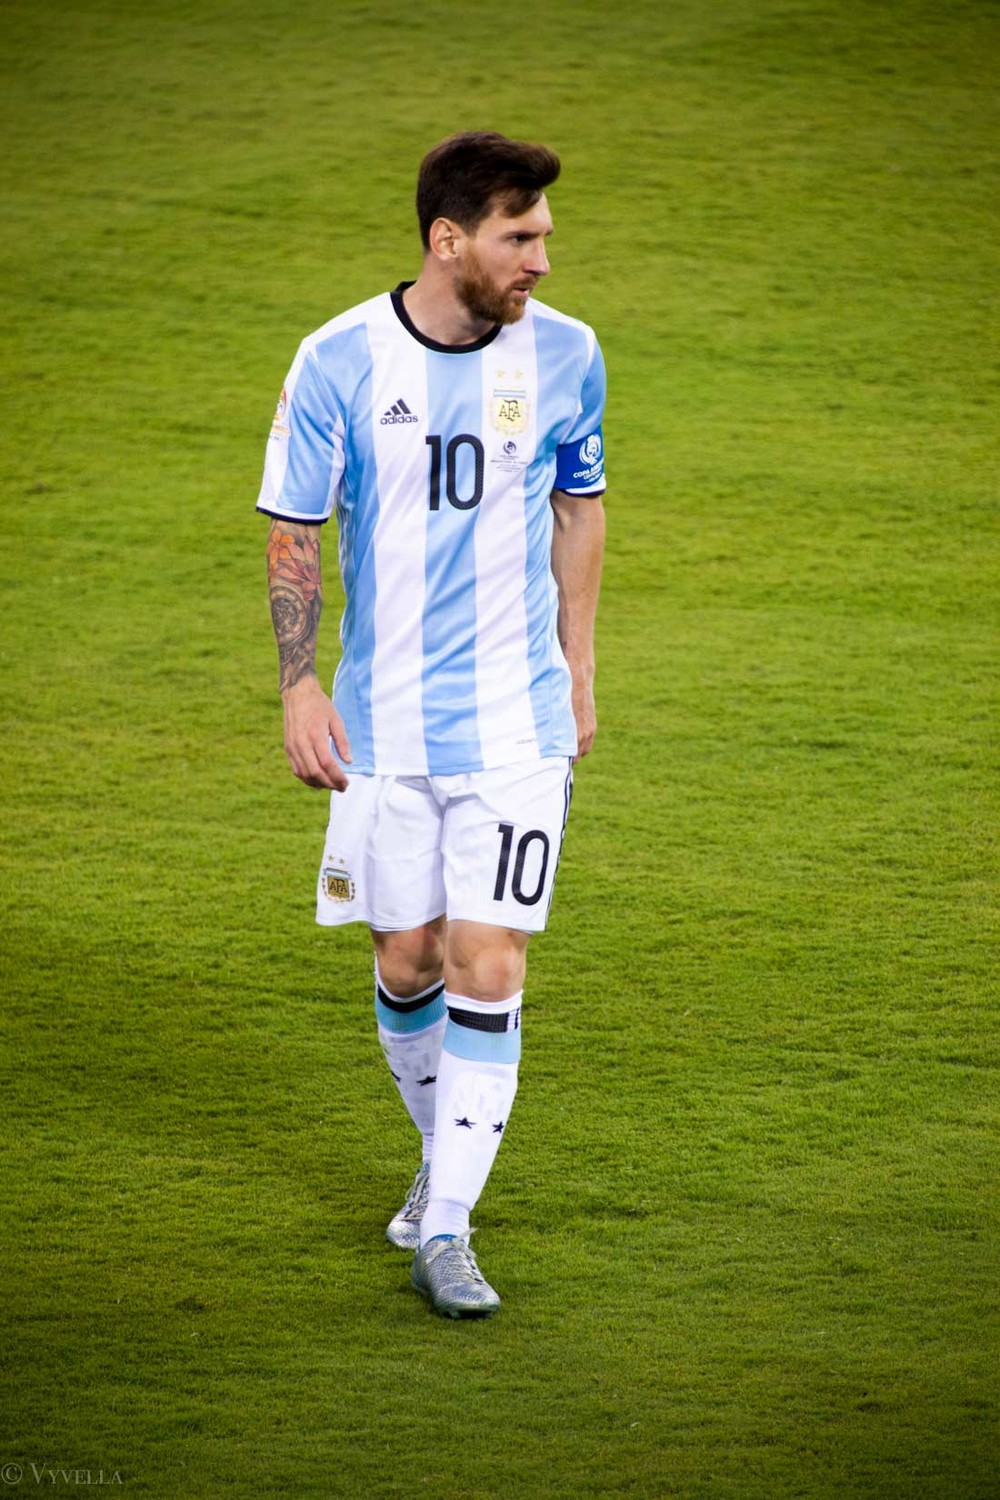 lifestyle_lionel-messi-on-copa-america-2016-final_03.jpg